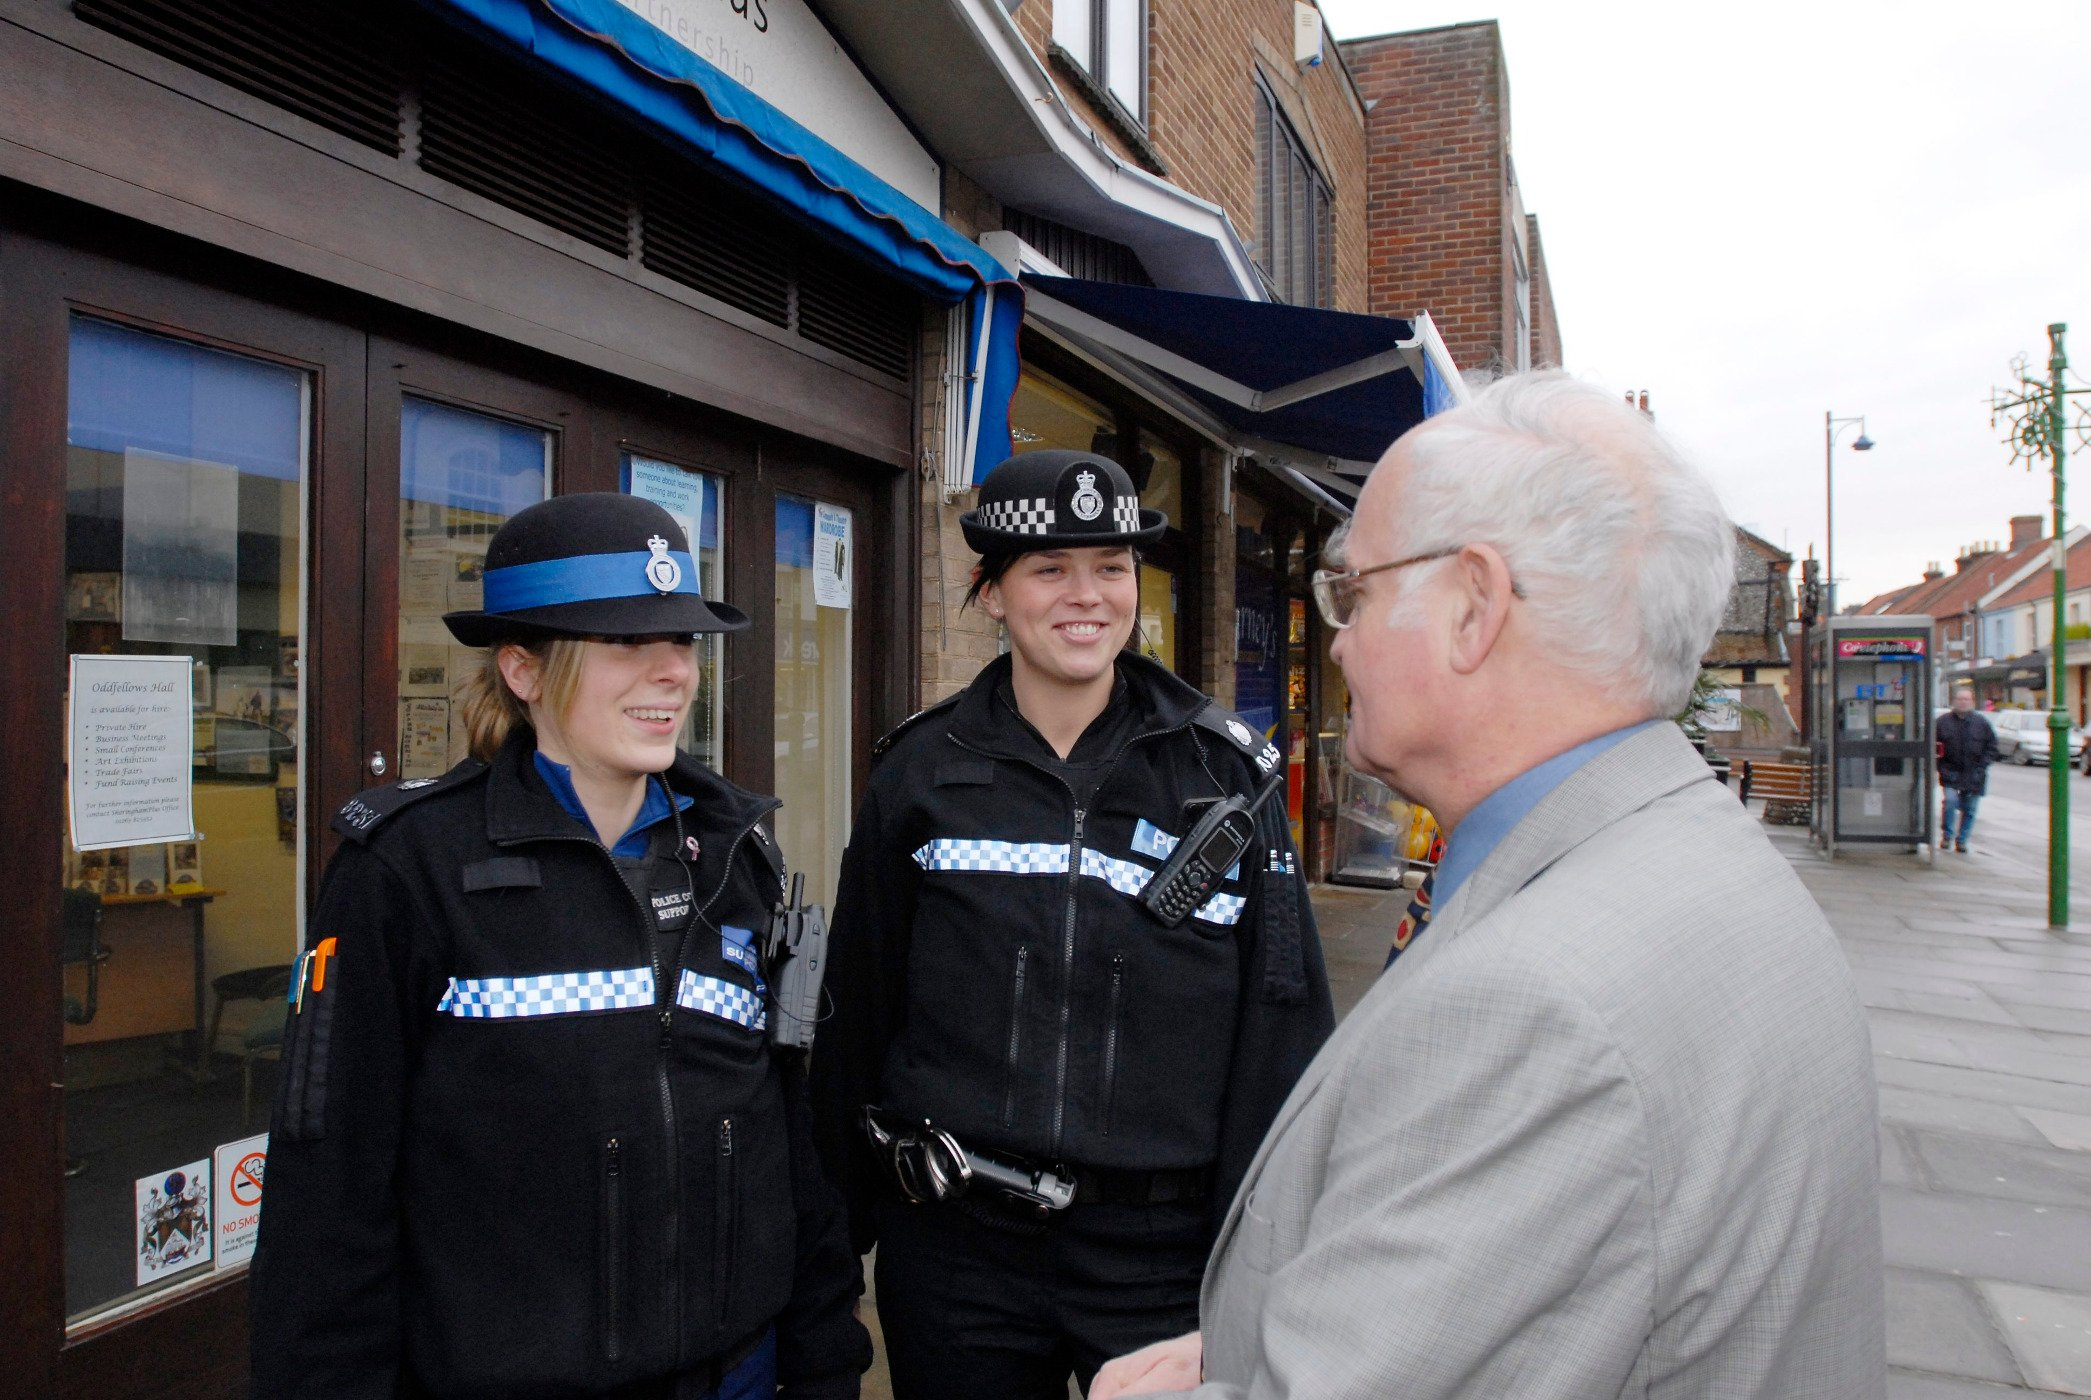 A PCSO and a police officer chat in the street to an elderly gentleman